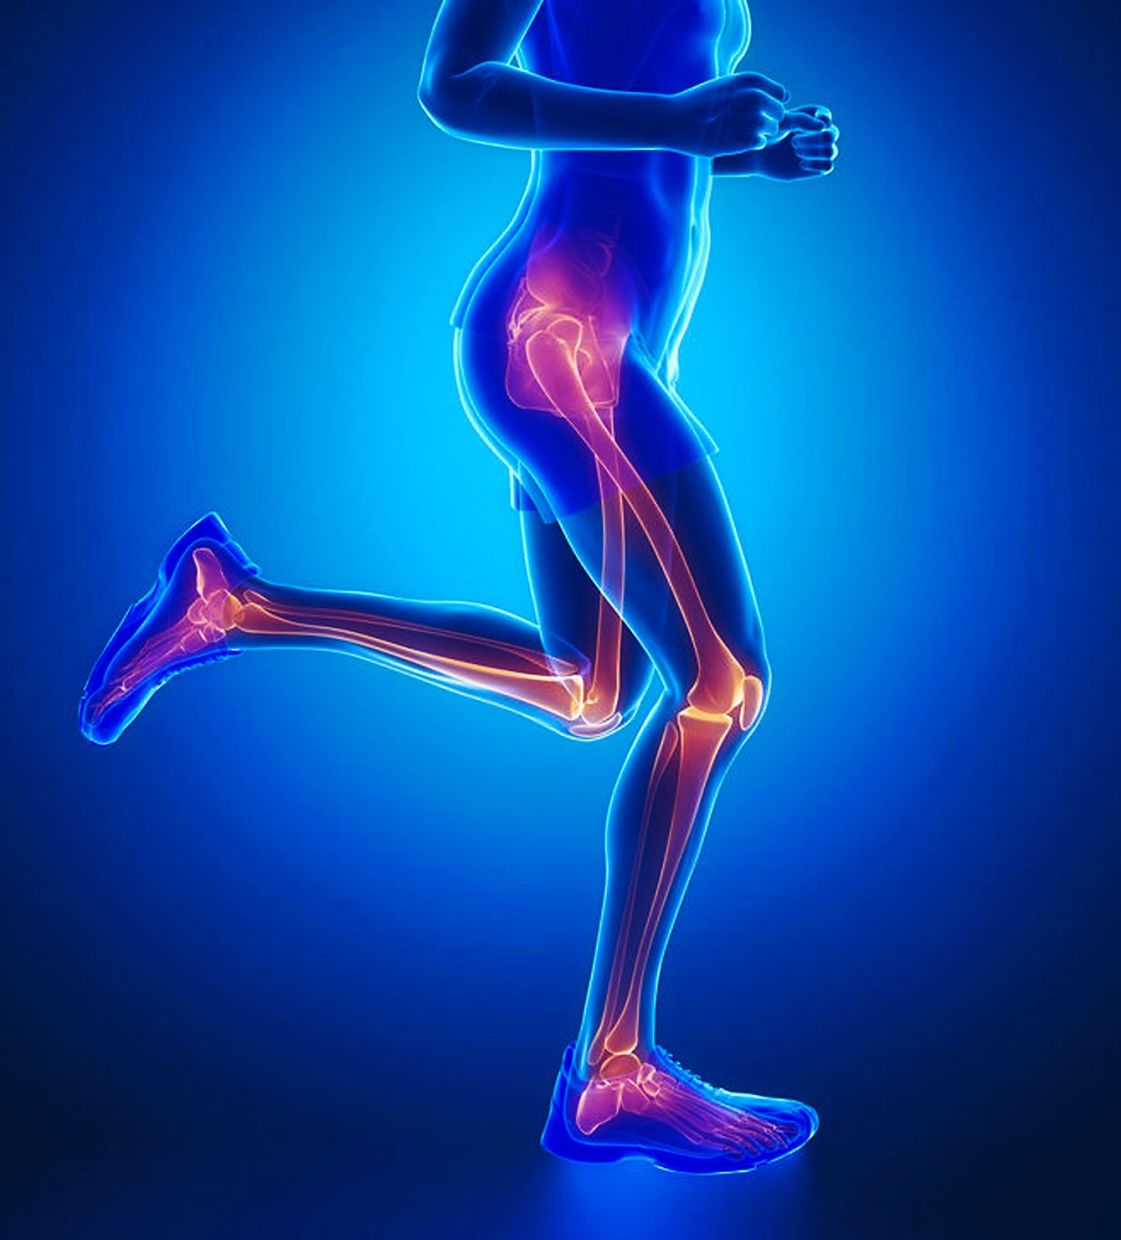 Bone loss and joint movement can be improved by walking for exercise.